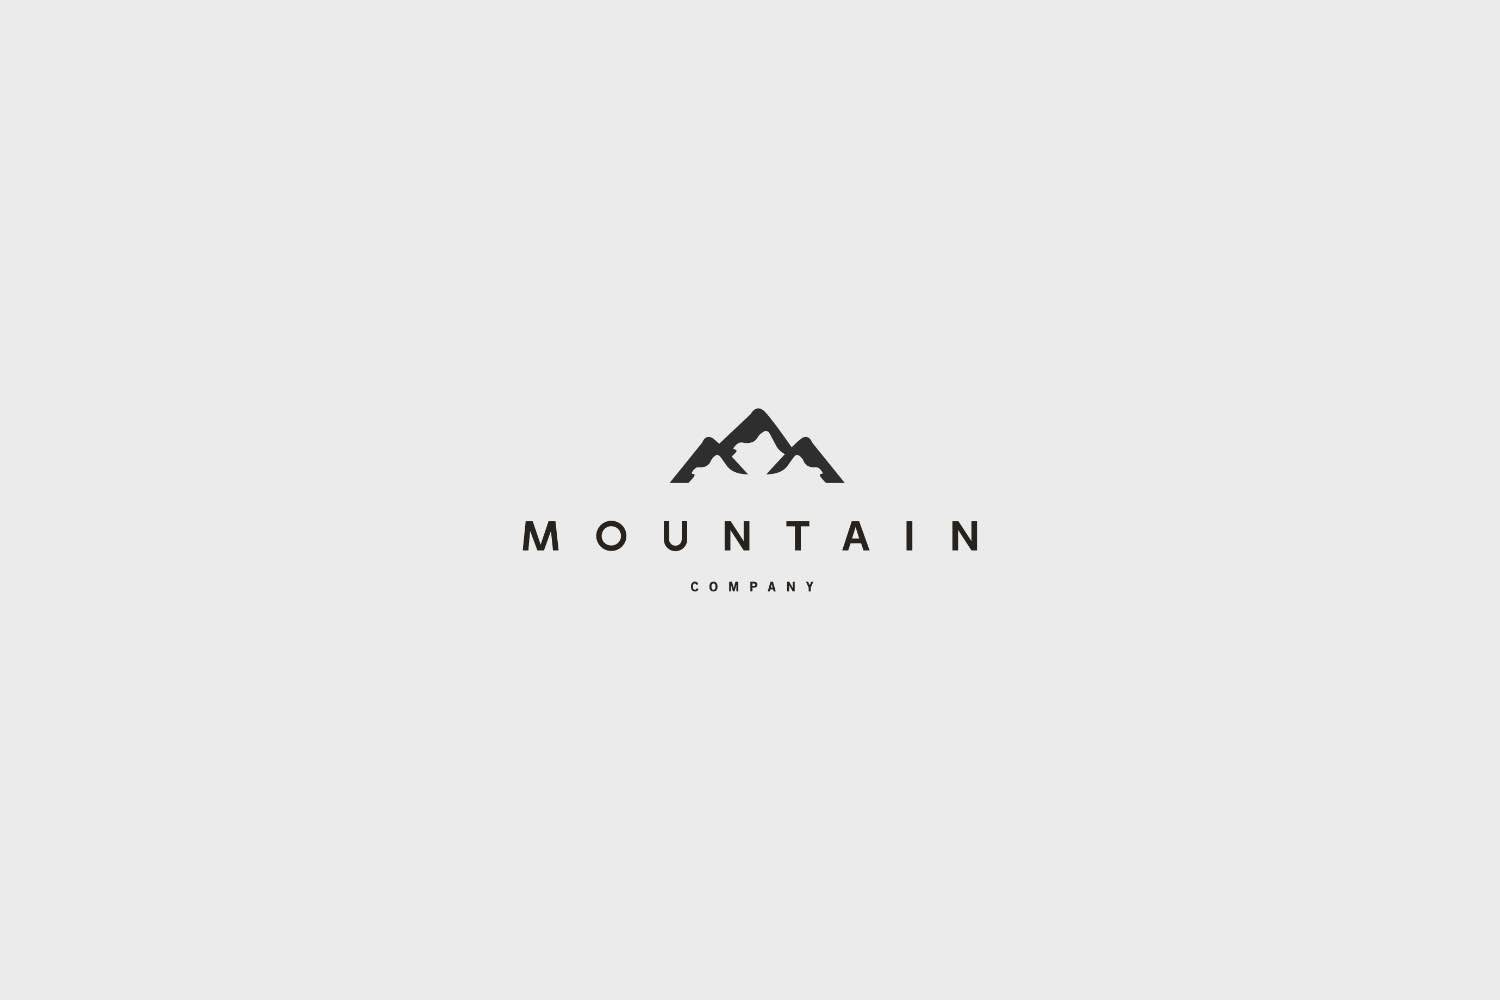 mountain-company-logo-the-creative-co.jpg